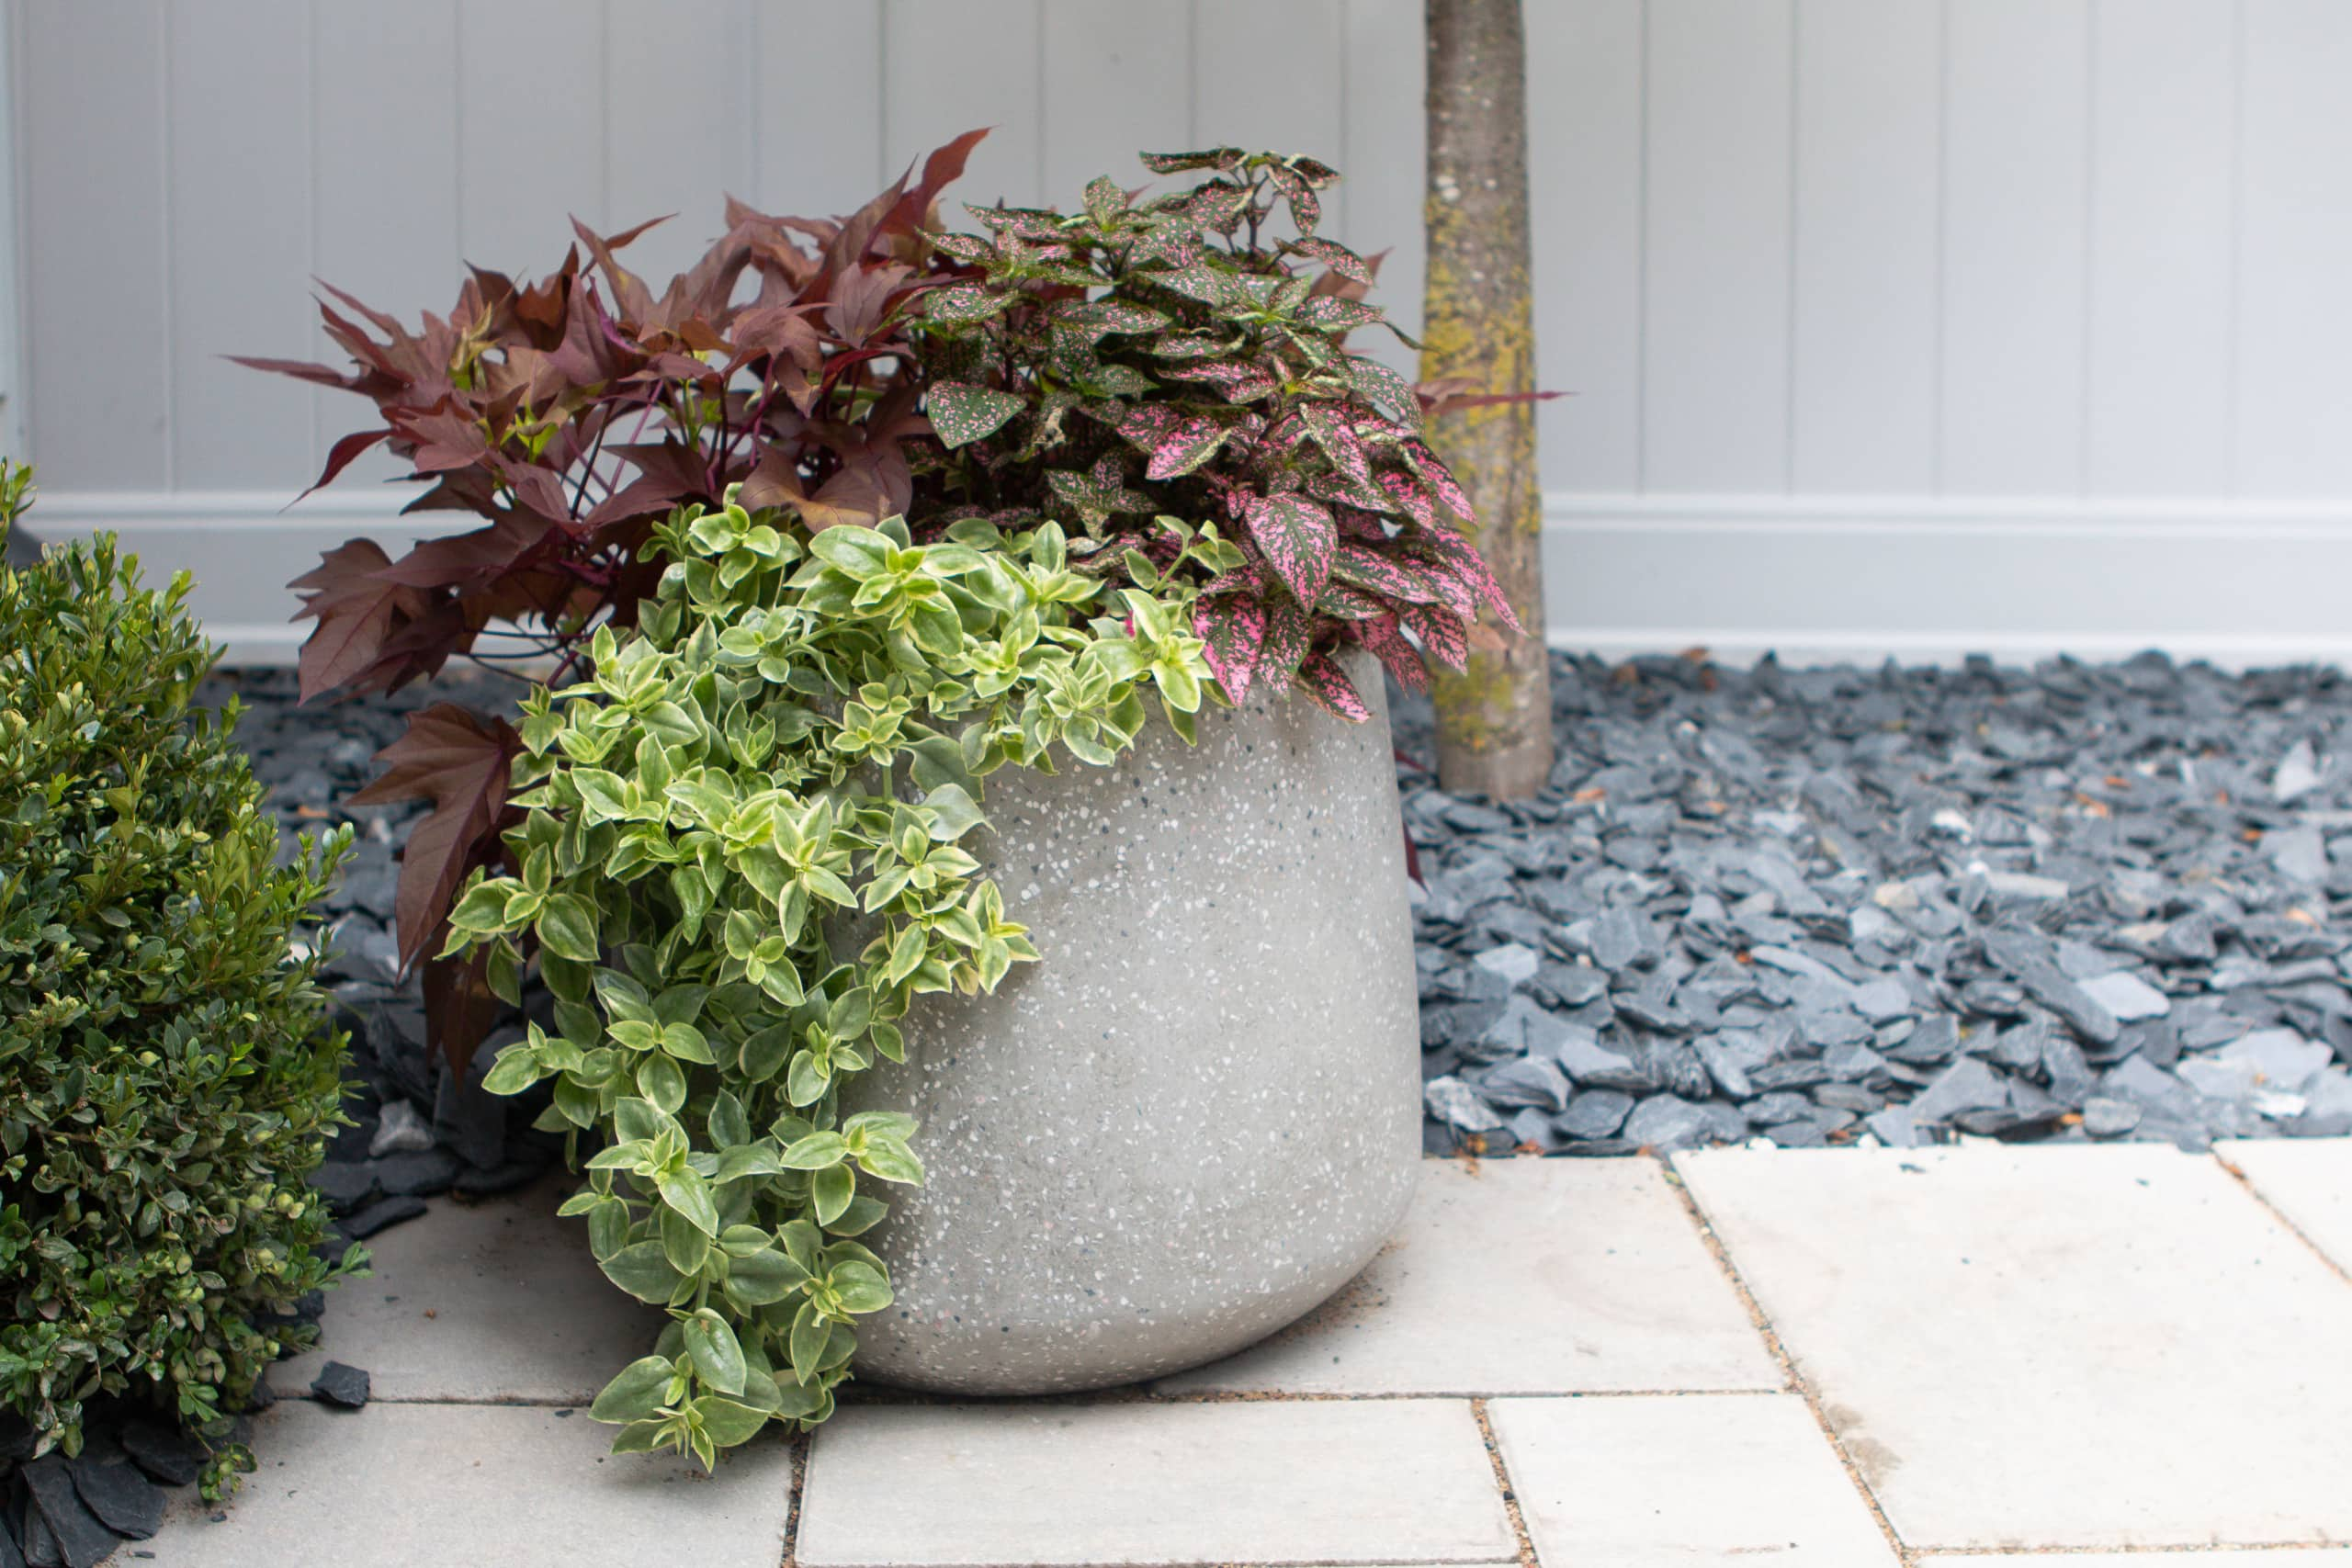 Our outdoor planters